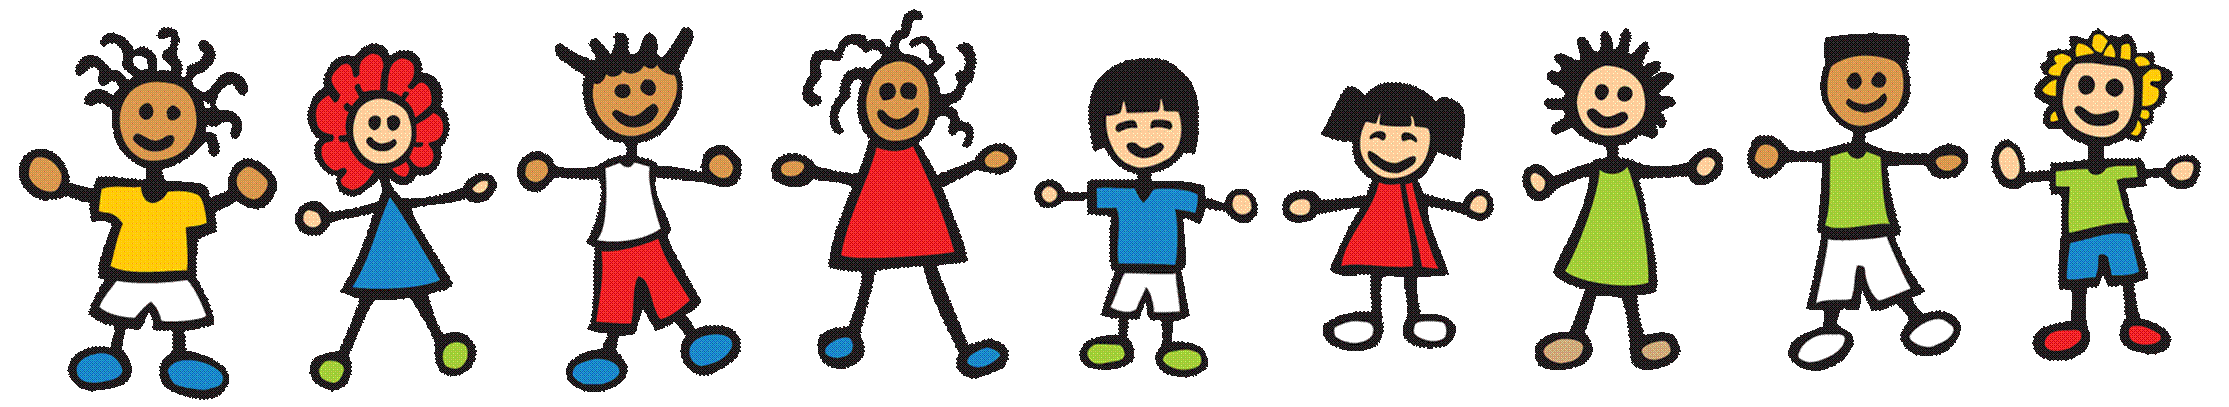 Nursery school clipart clipart kid 2